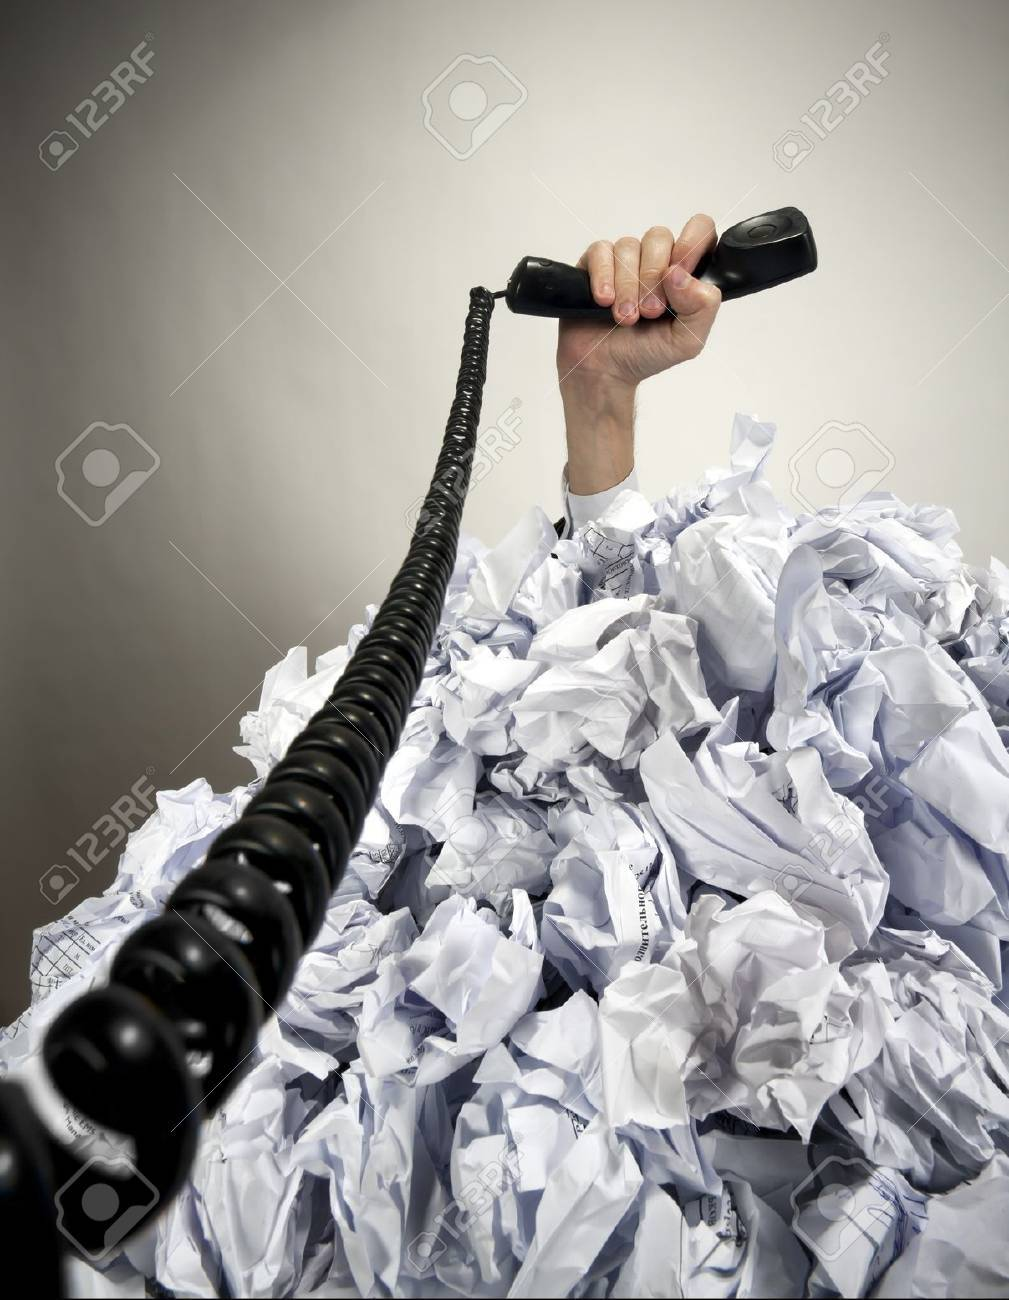 Hand with phone reaches out from big heap of crumpled papers Stock Photo - 18312385